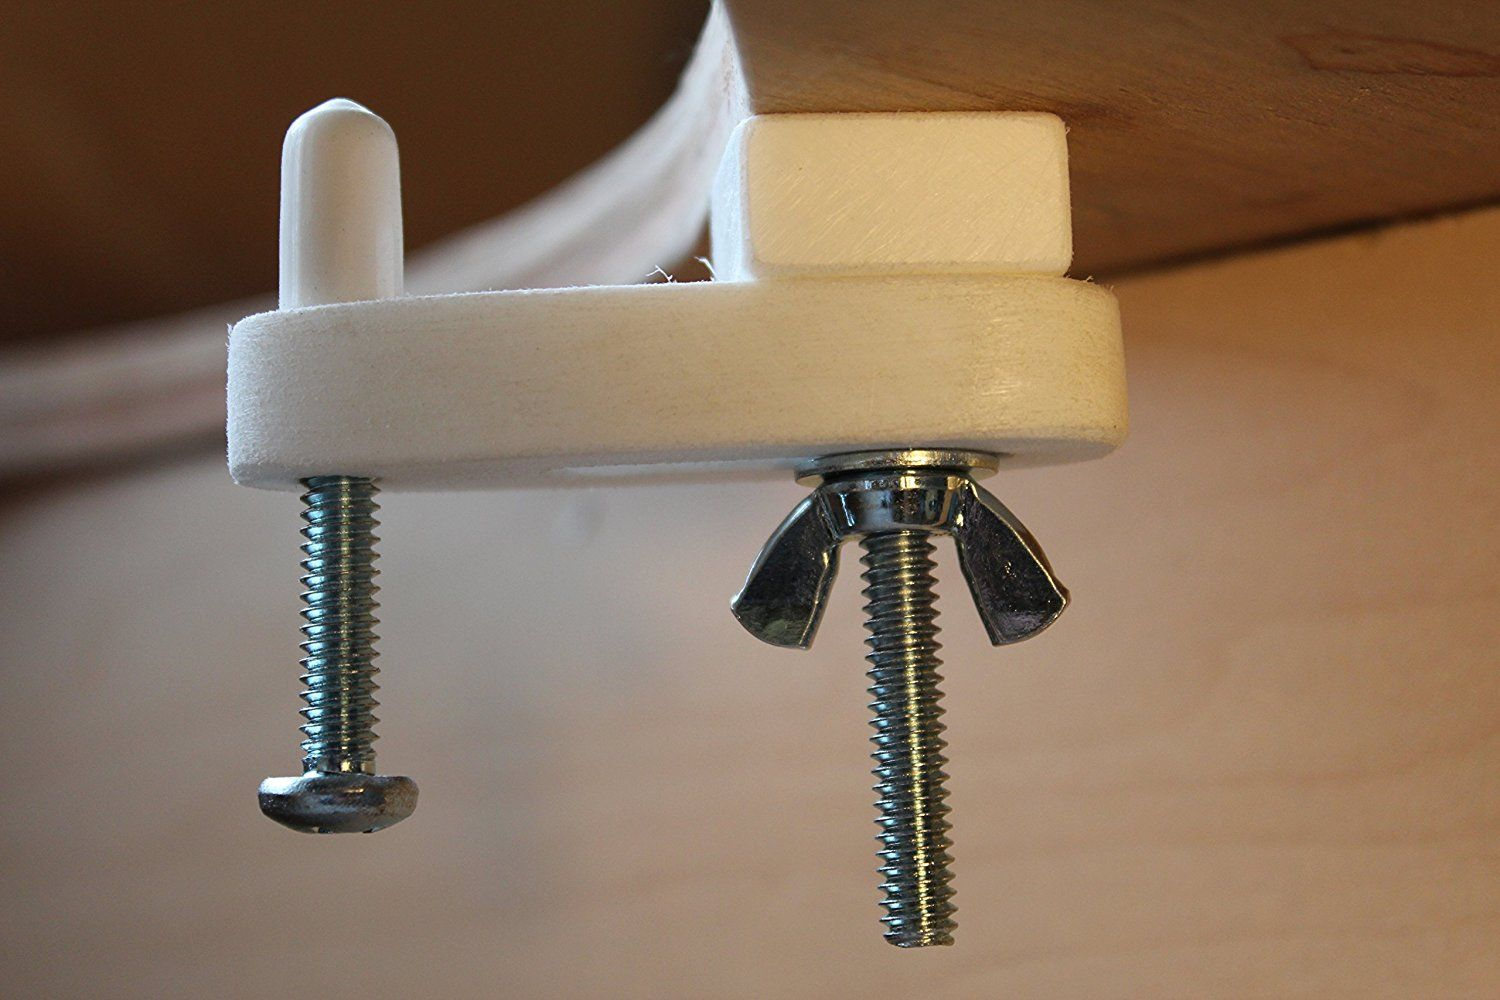 Sink Mount Kit  Undermount Brackets, Supports, Clips  One Kit Contains Four  Brackets